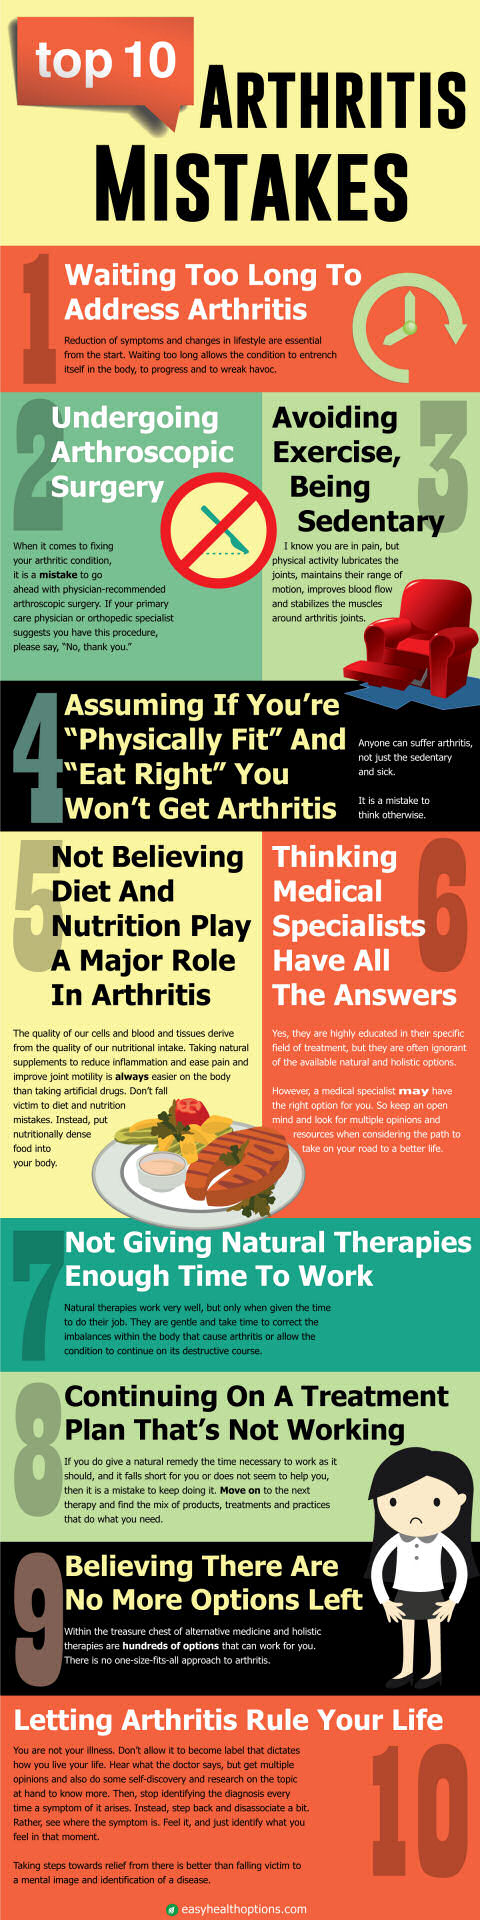 Top Ten Arthritis Mistakes